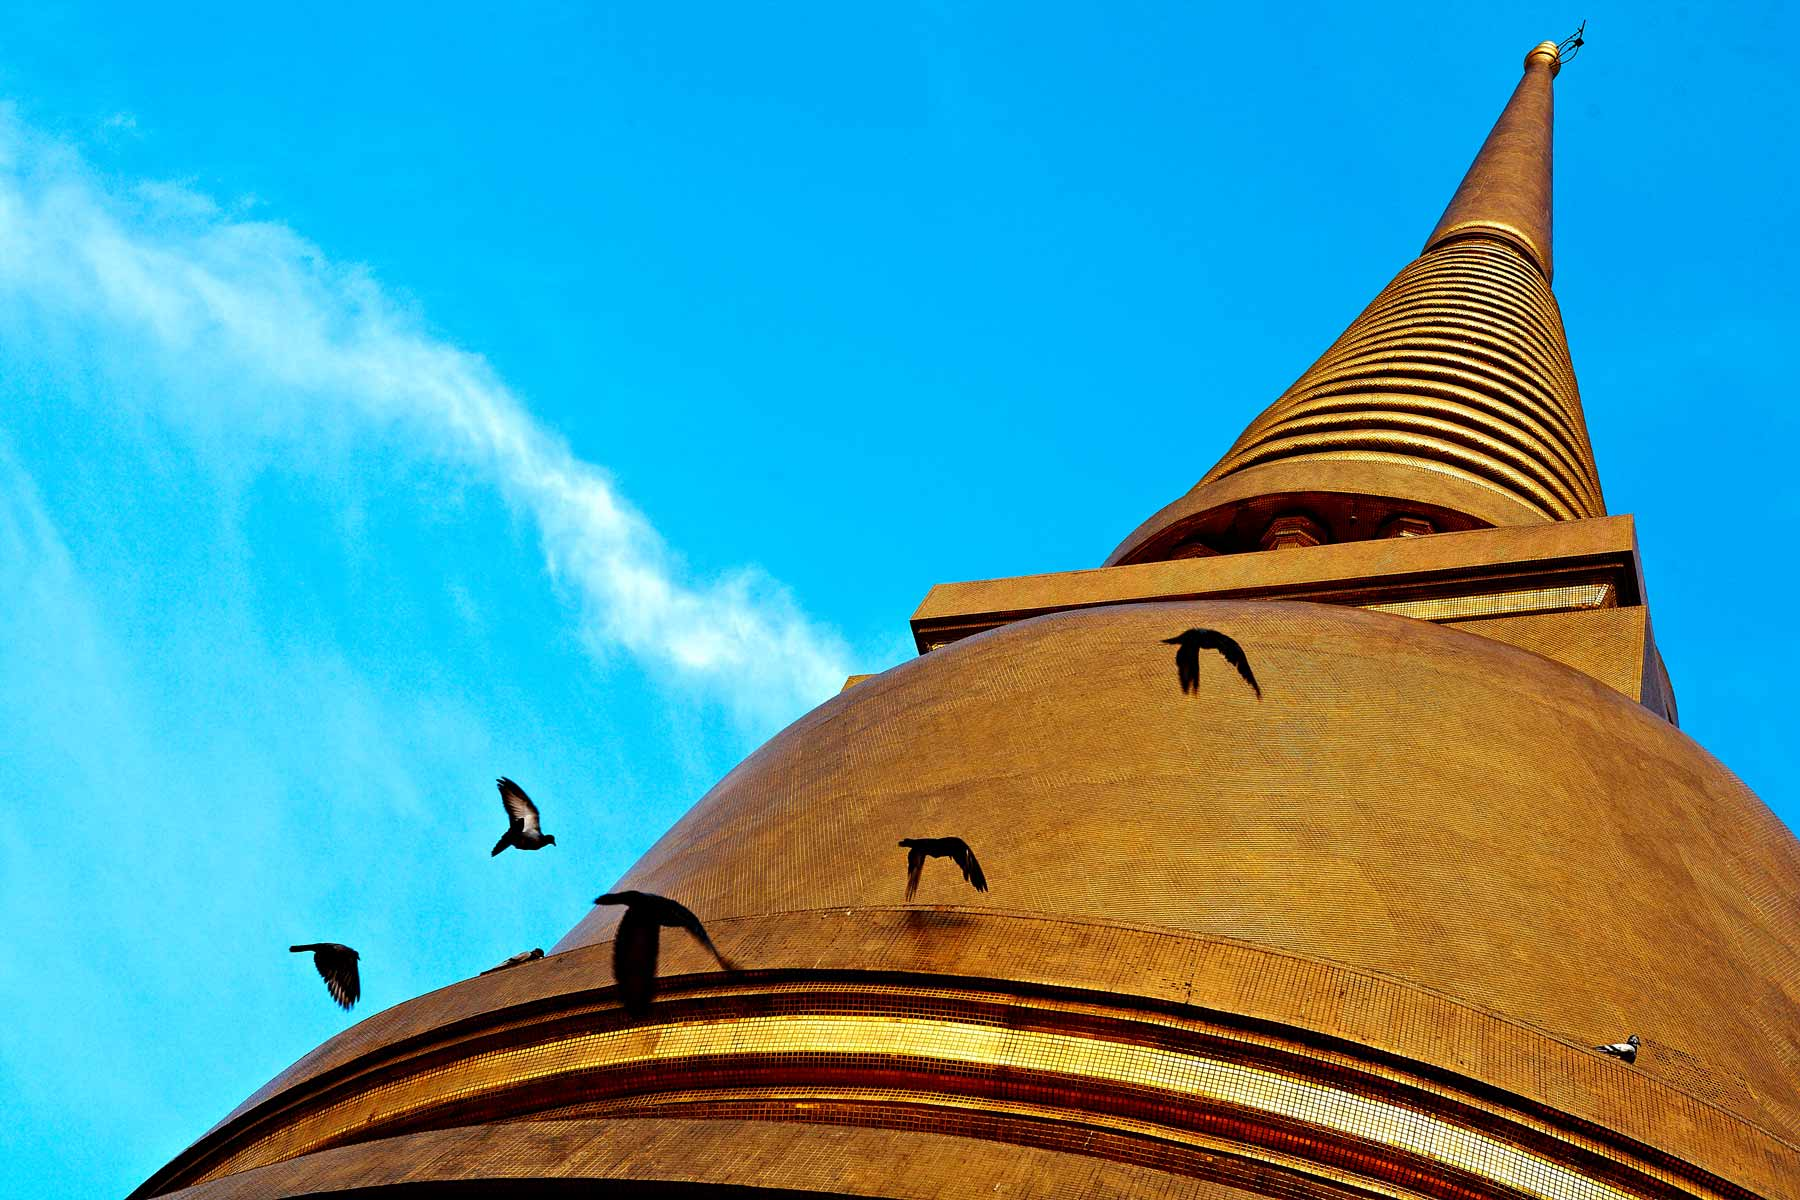 Birds on the roof of the temple